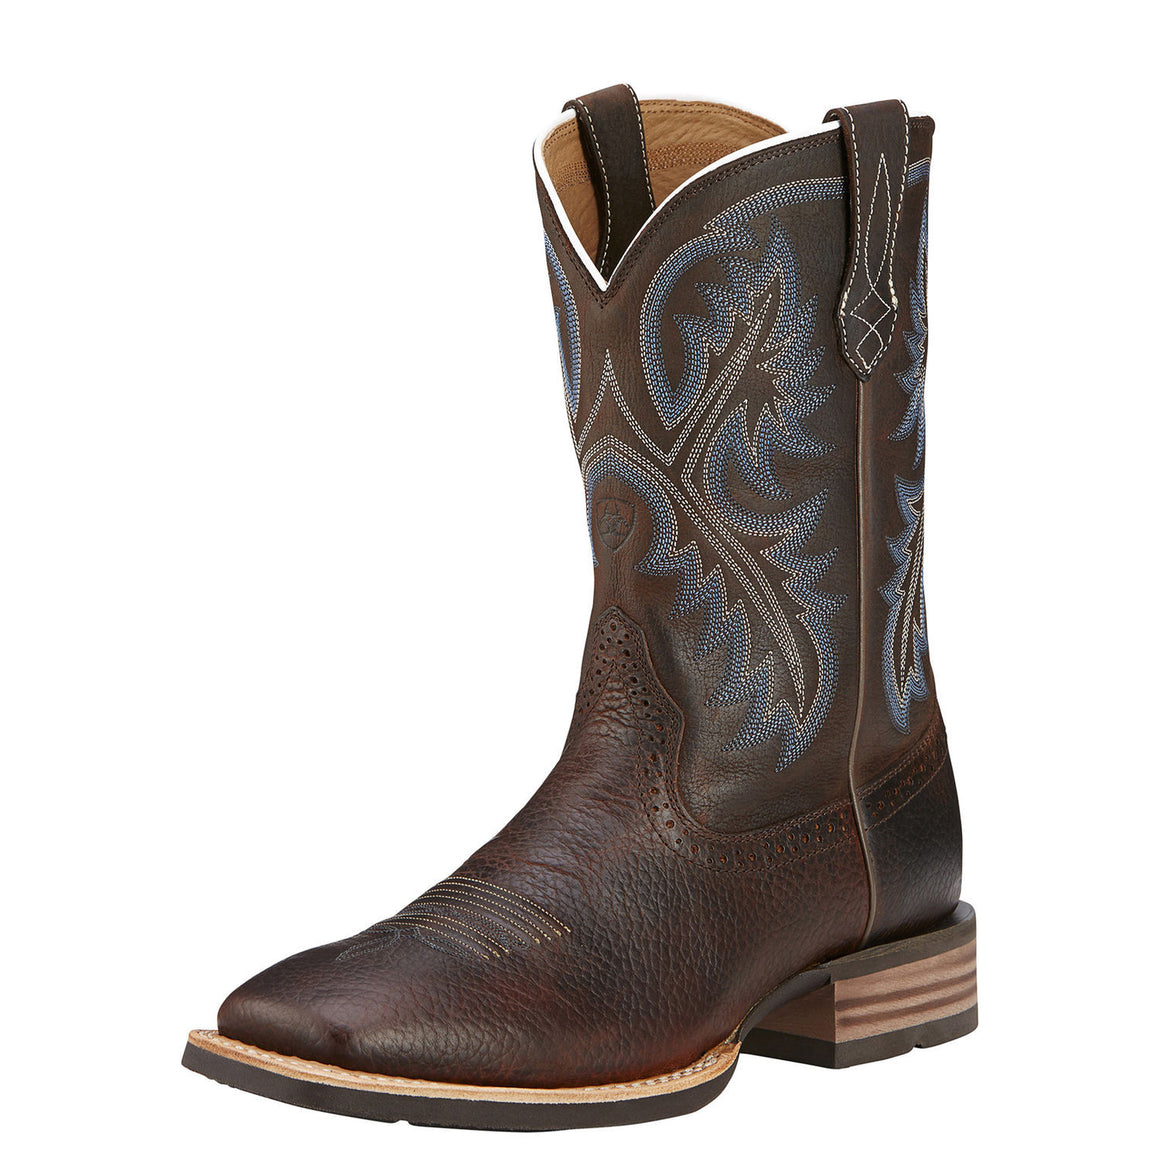 "Ariat Men's 11"" Quickdraw Western Boots - Brown Oiled Rowdy 10006714 - ShoeShackOnline"